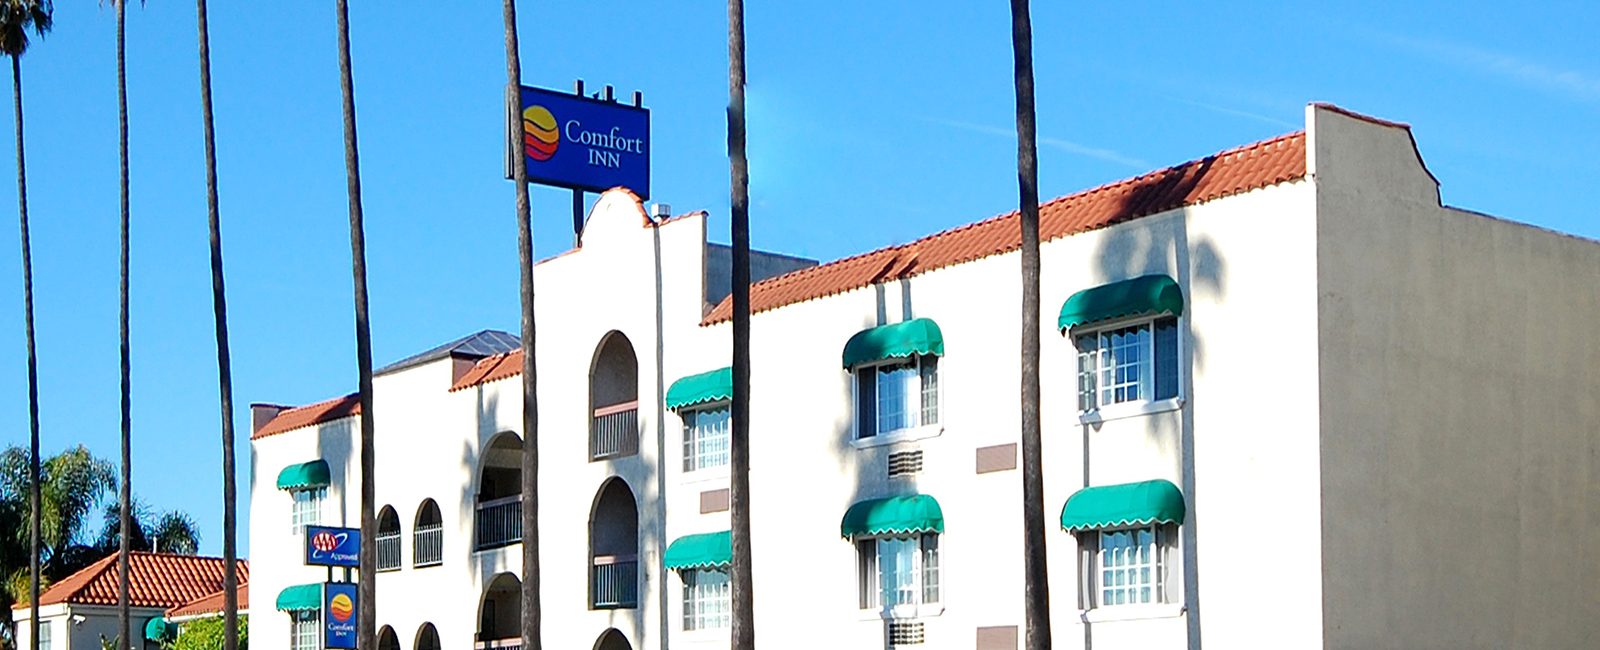 Comfort Inn Santa Monica-West Los Angeles California